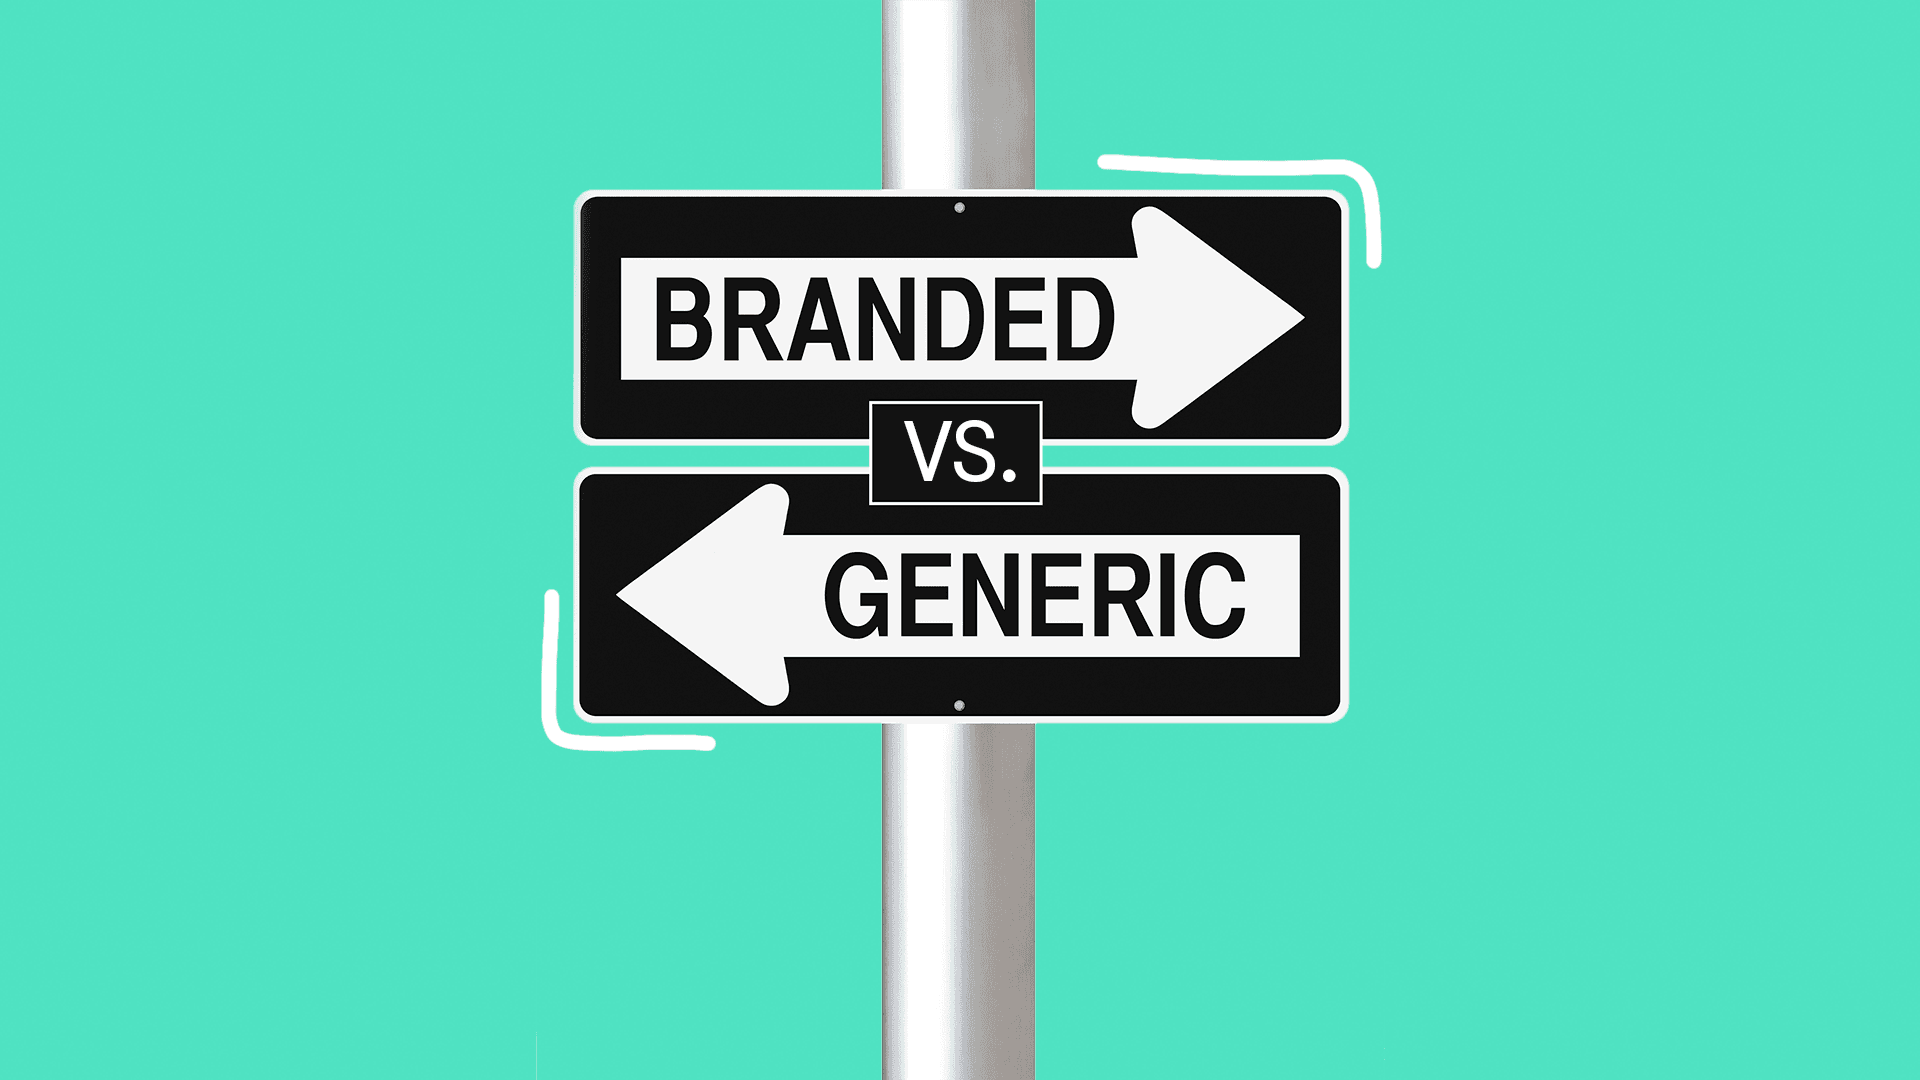 If you've been grocery shopping, then you'll understand the dilemma when choosing between generic brands and brand-name products.